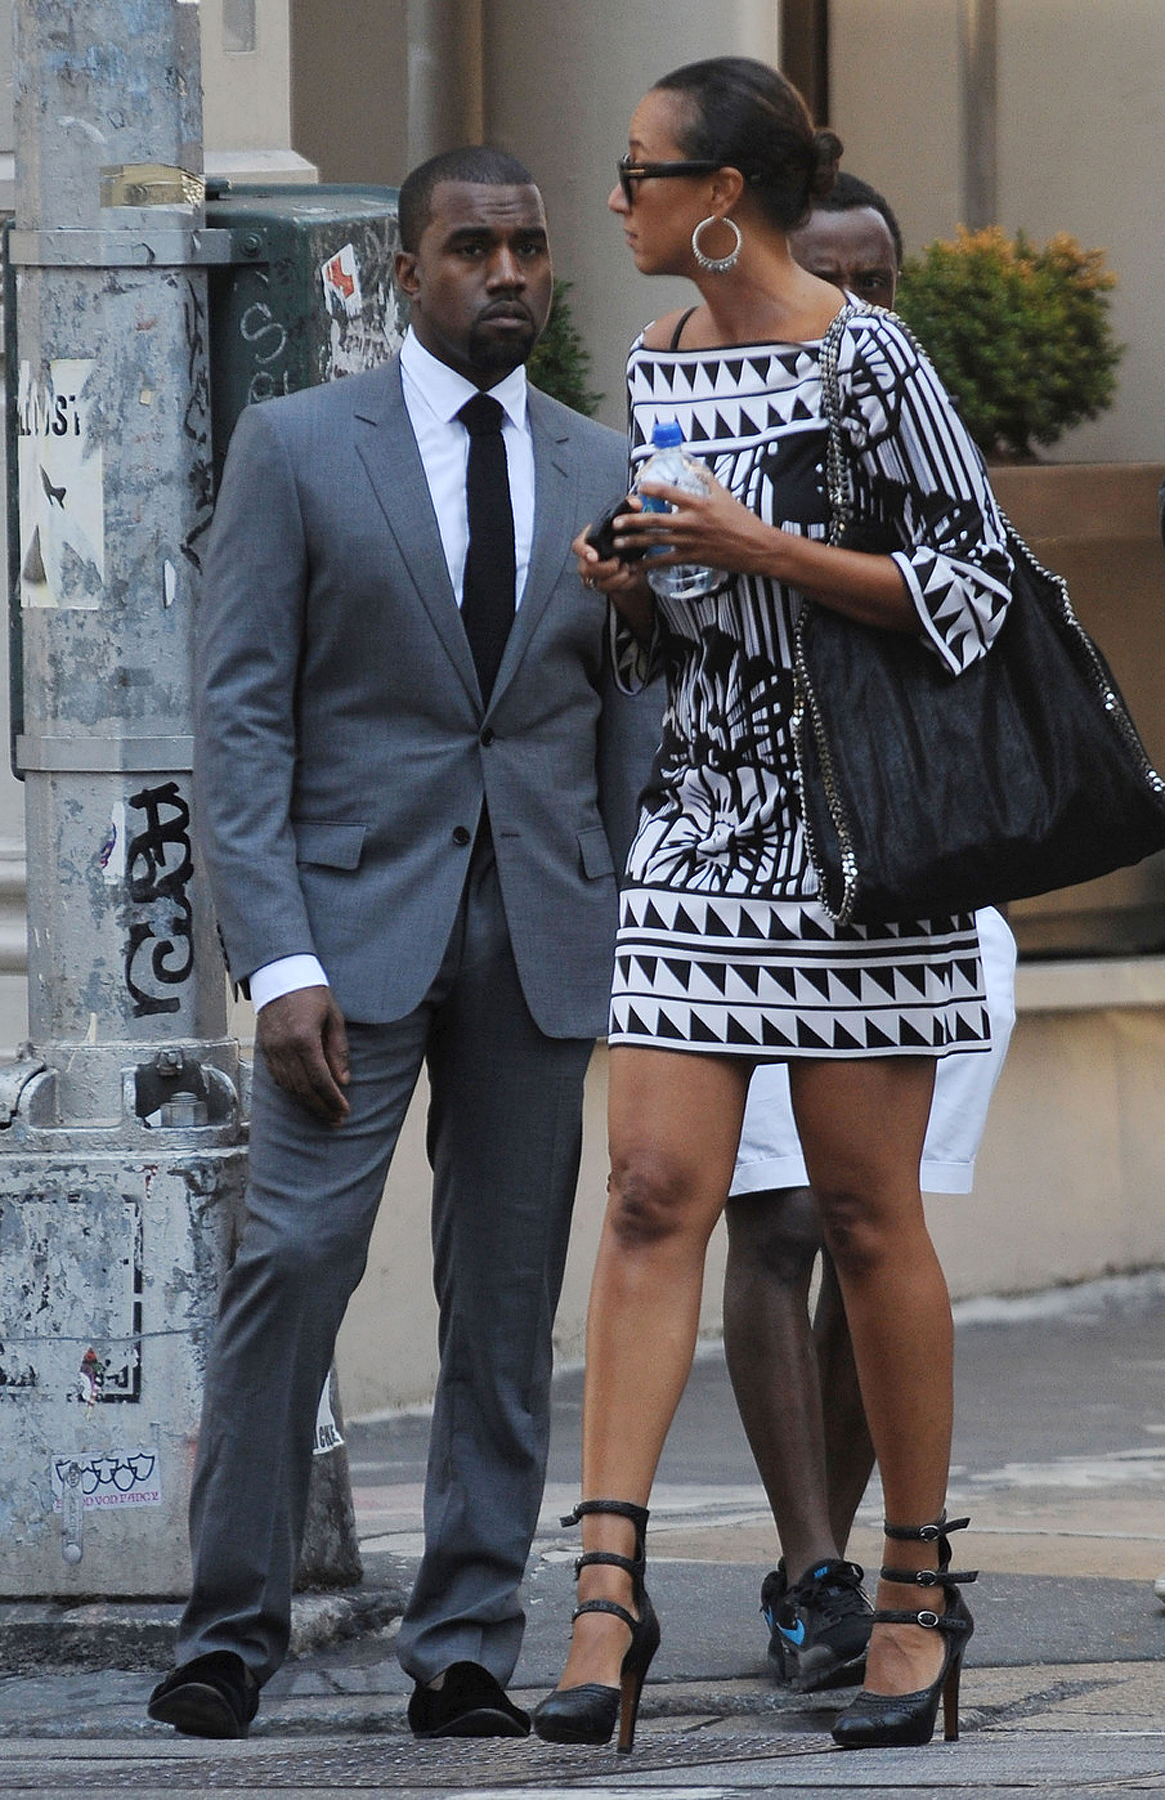 Kanye West's Sockless Look: Yay or Nay? (PHOTOS)